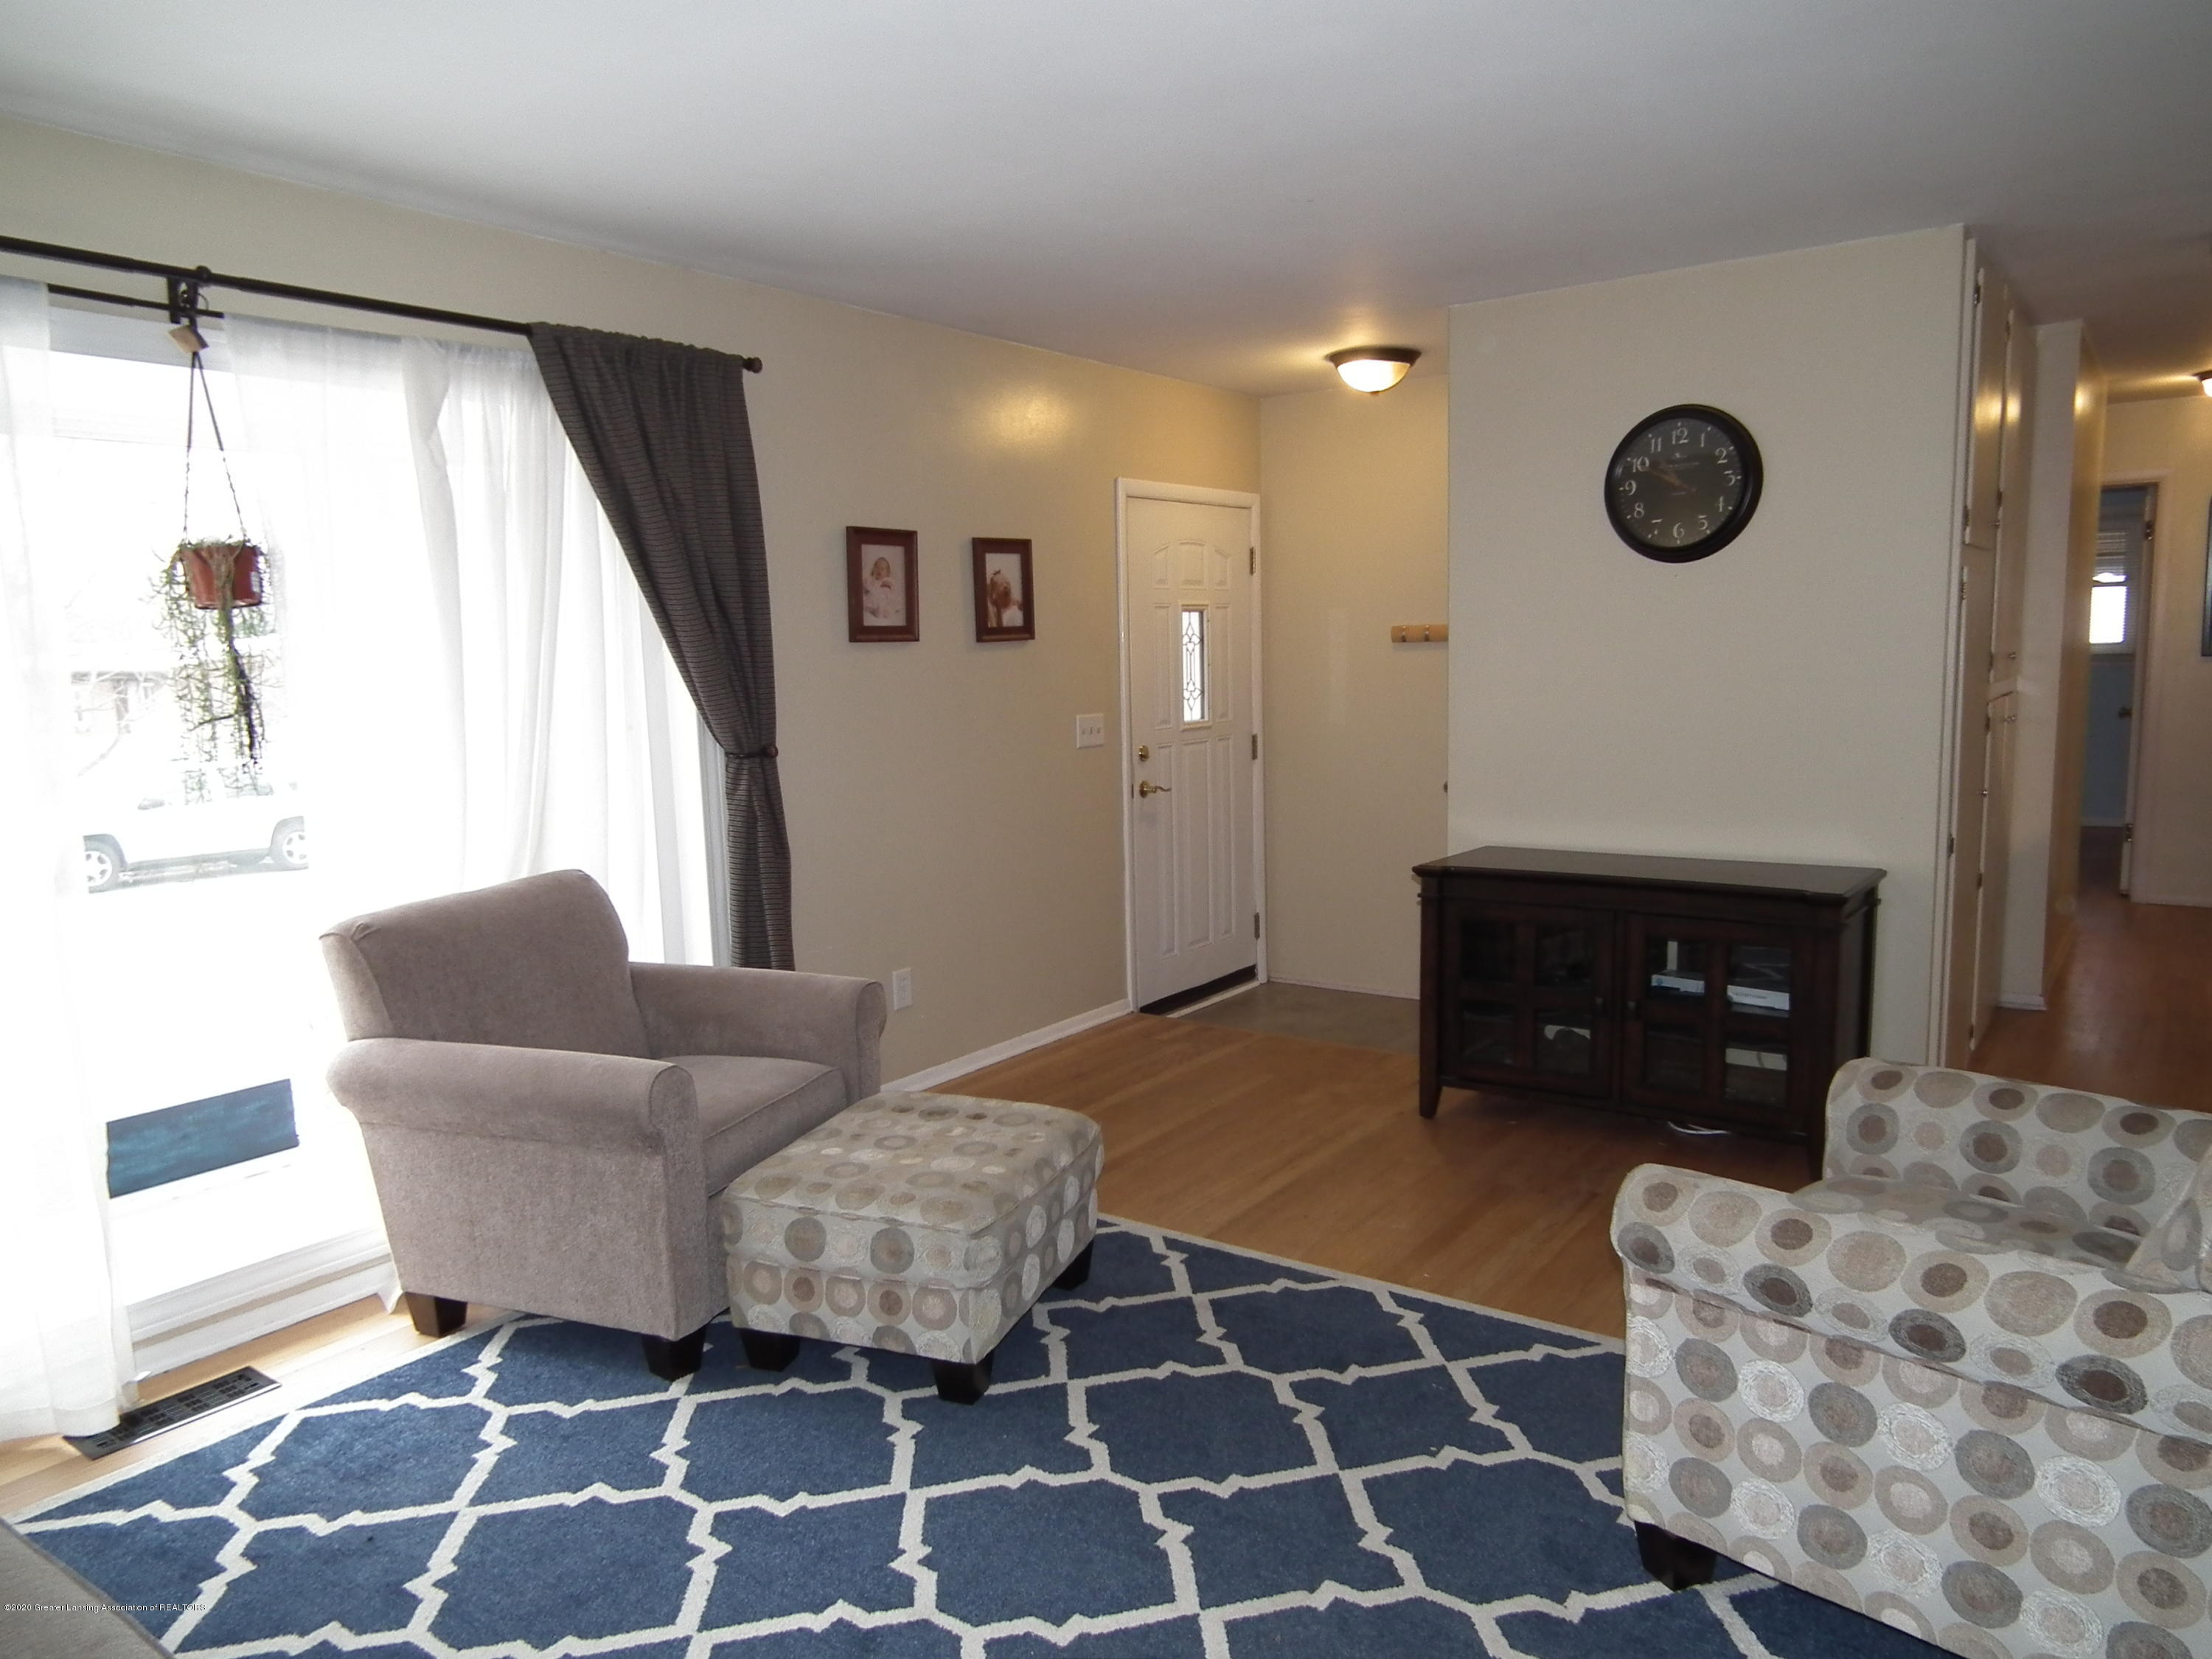 1609 N Hayford Ave - Living room a - 2